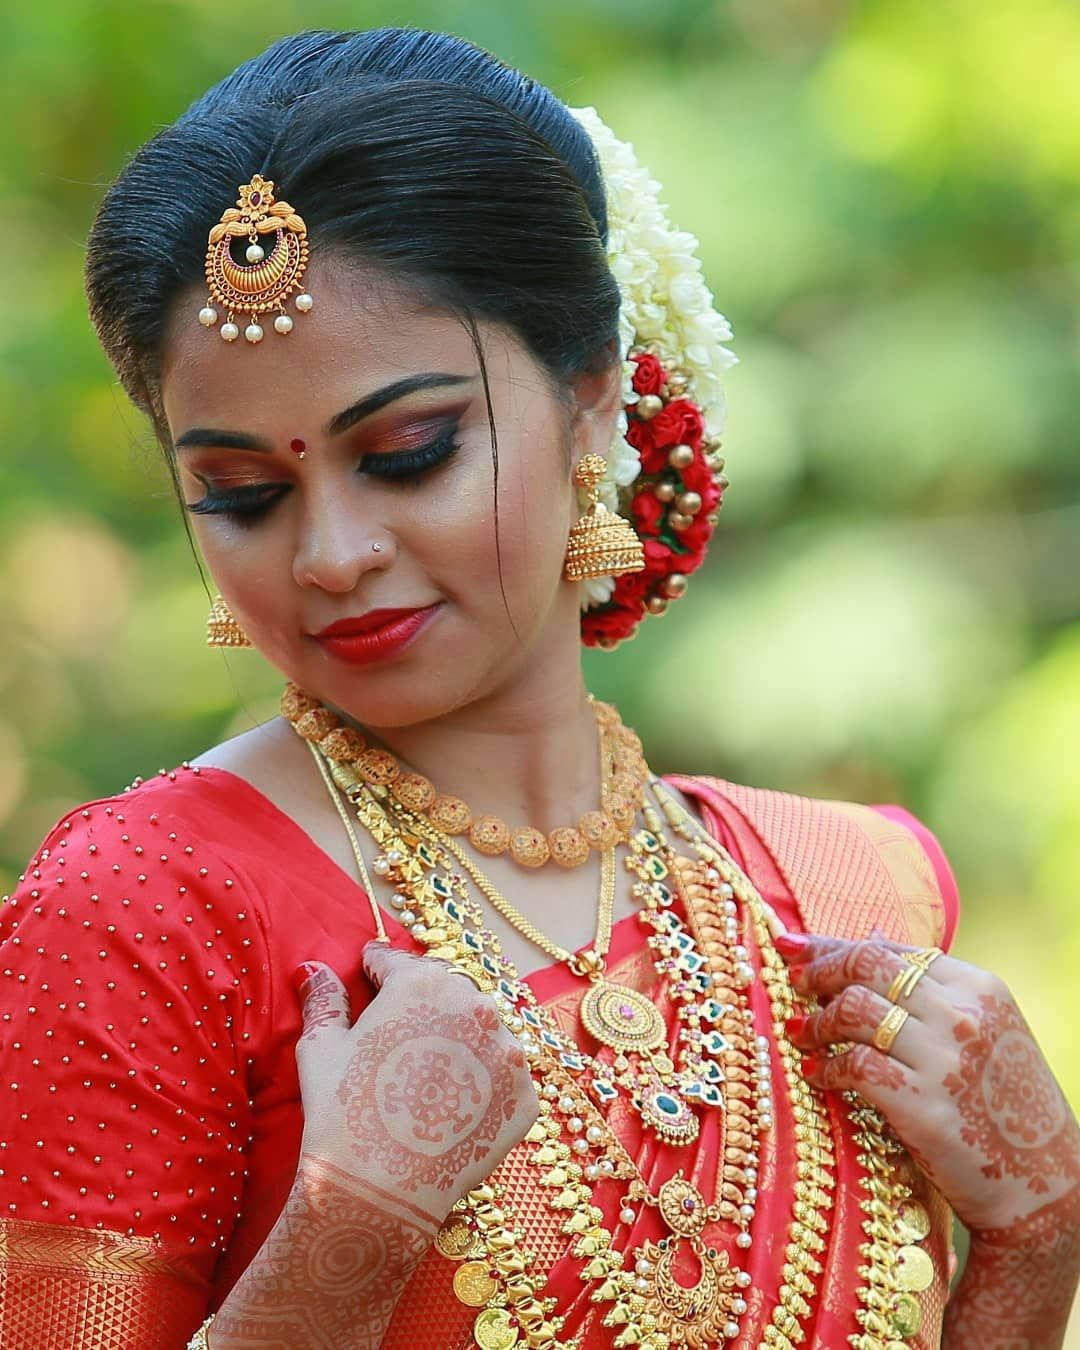 Image may contain 1 person, closeup Kerala bride, Bride